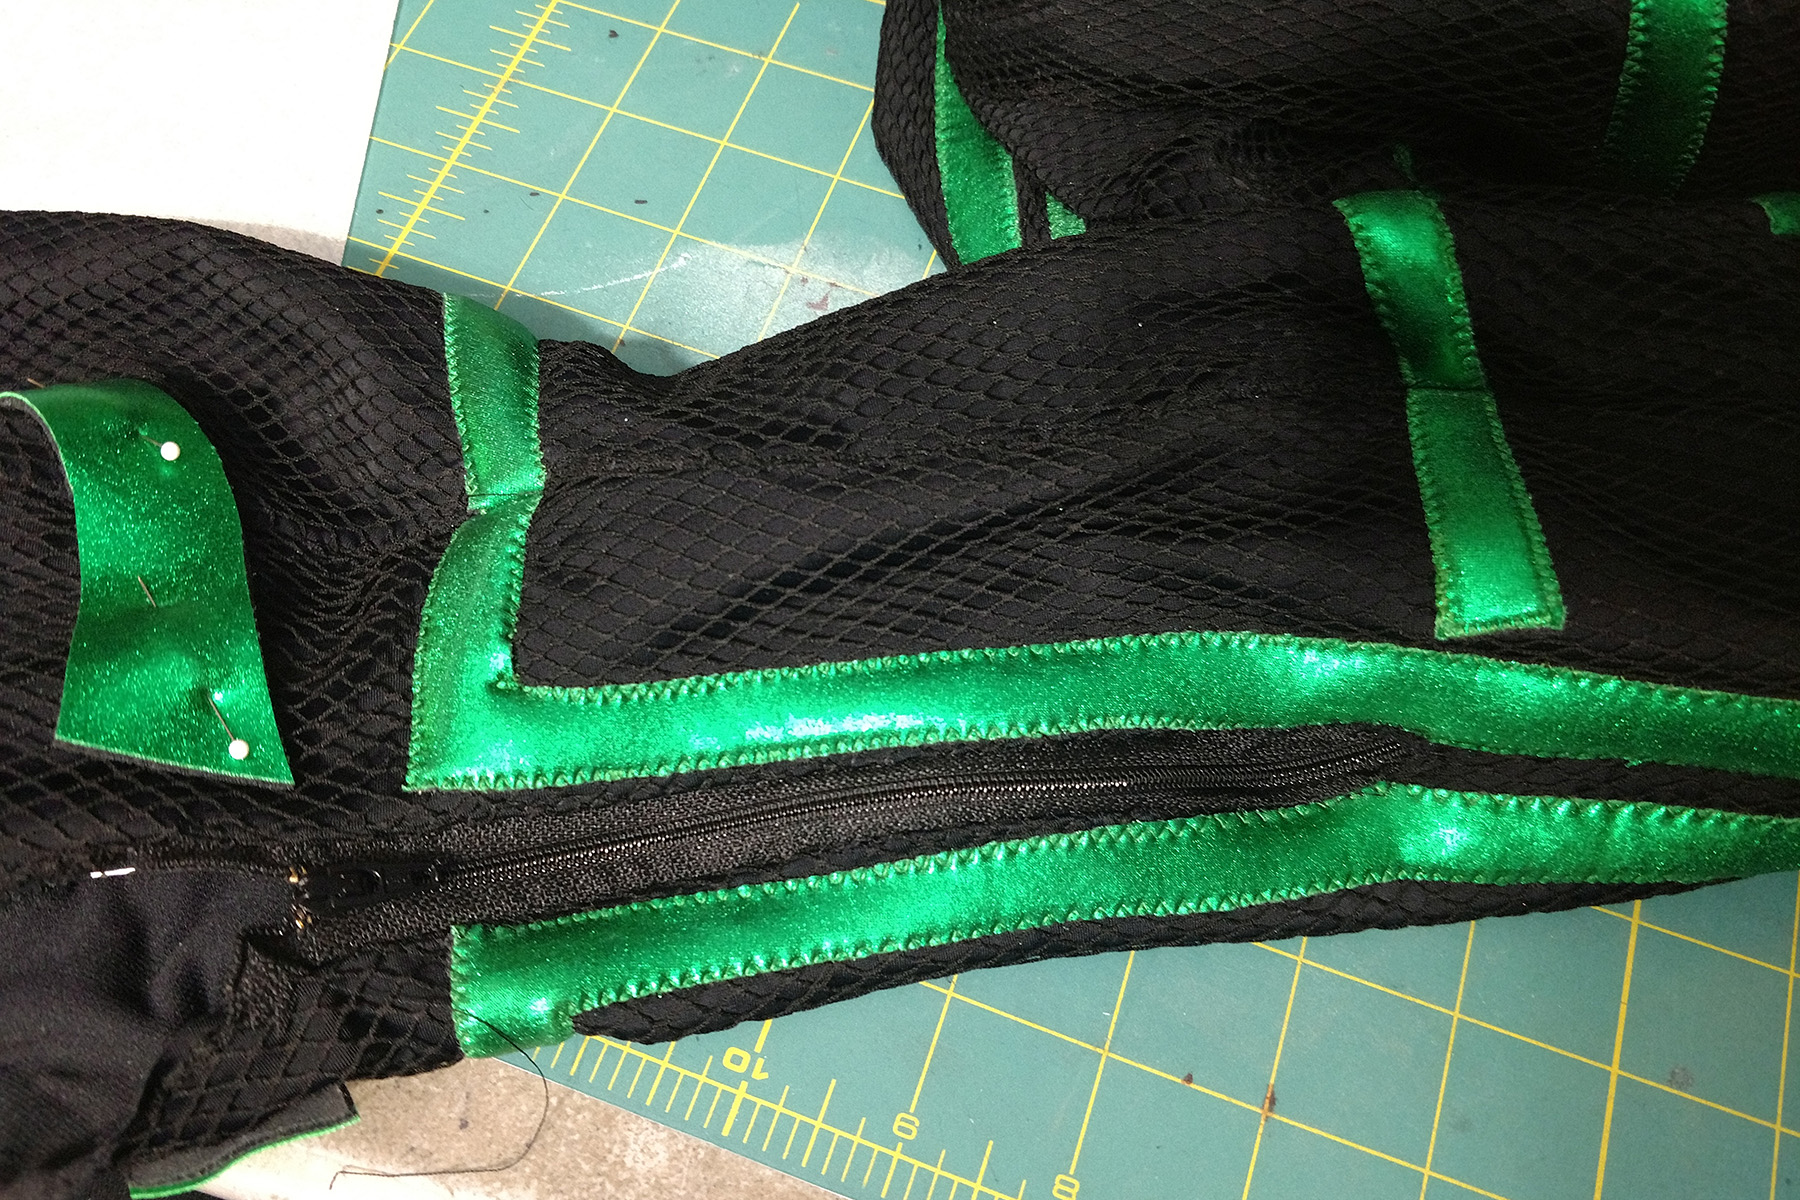 A close up view of the back of the ankles, where the zippers were sewn into this Hela cosplay.